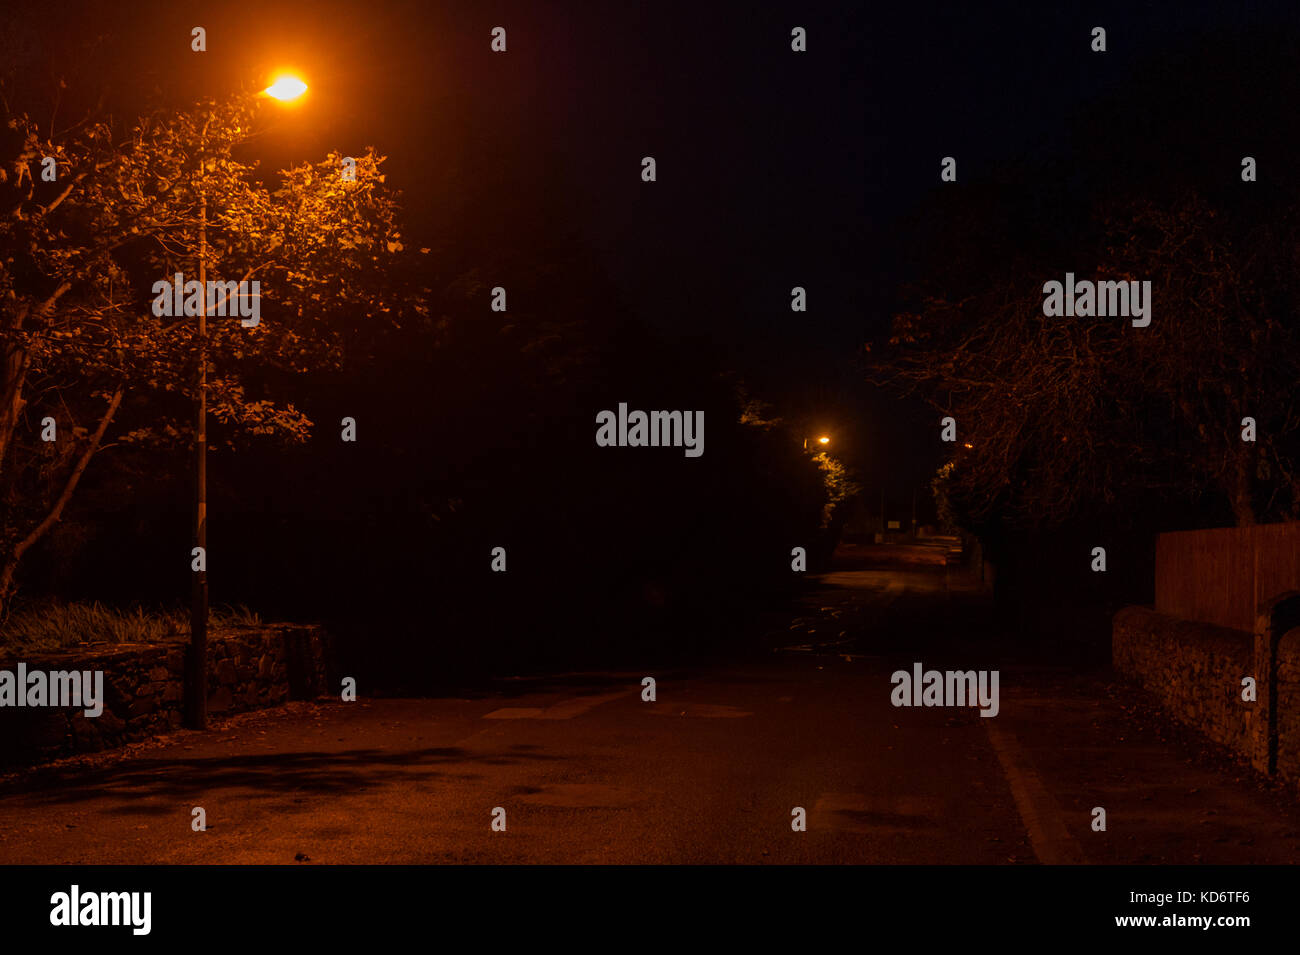 Empty road on a dark night with an orange street light illuminating the road and a tree with copy space. - Stock Image